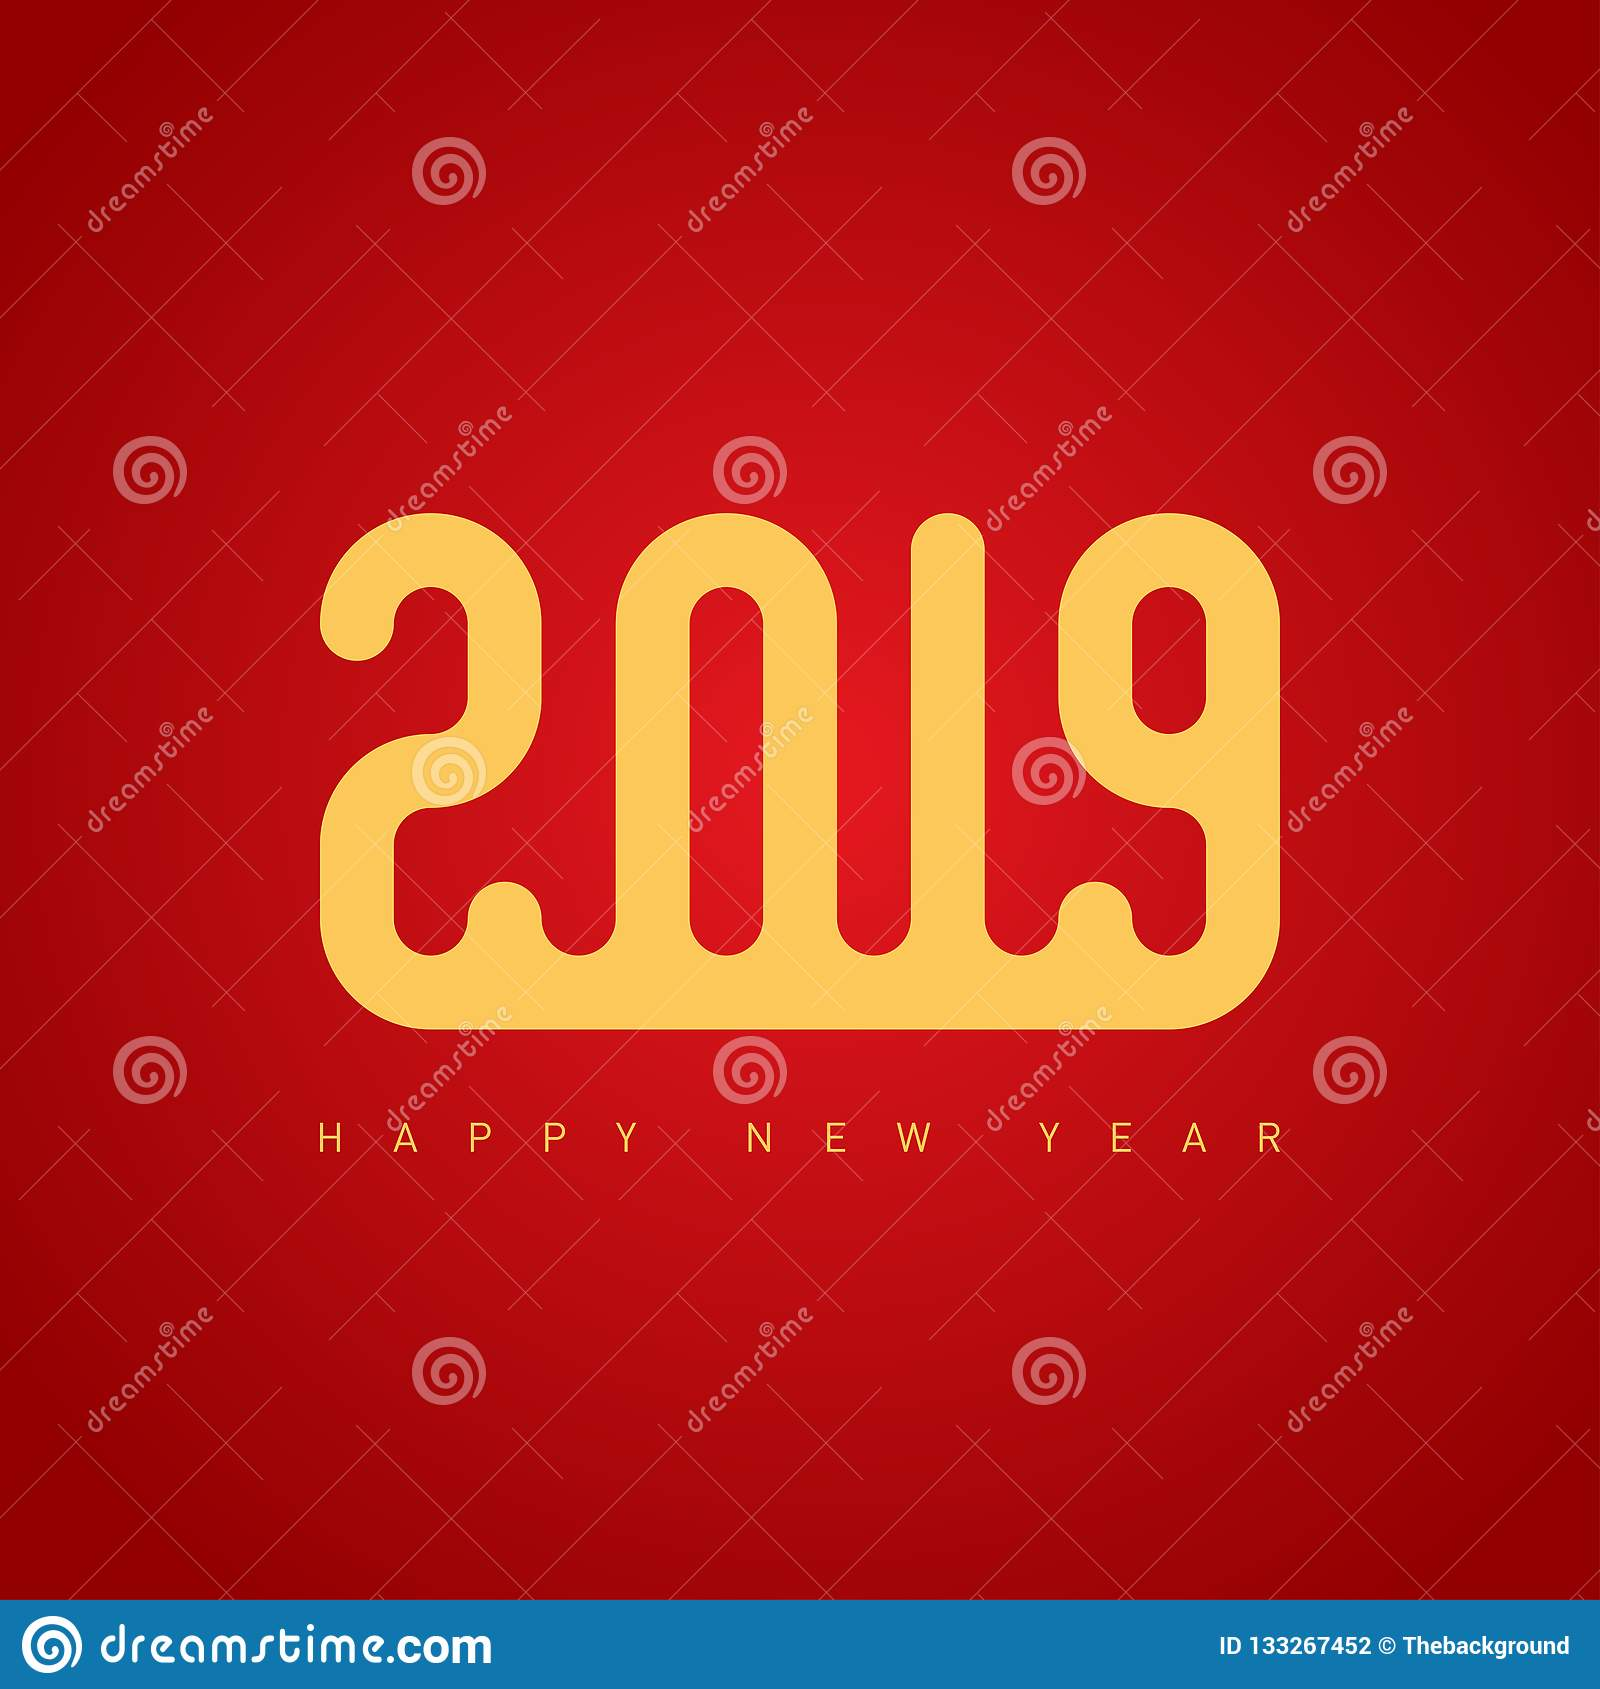 happy new year 2019 the cover of the calendar or business diary